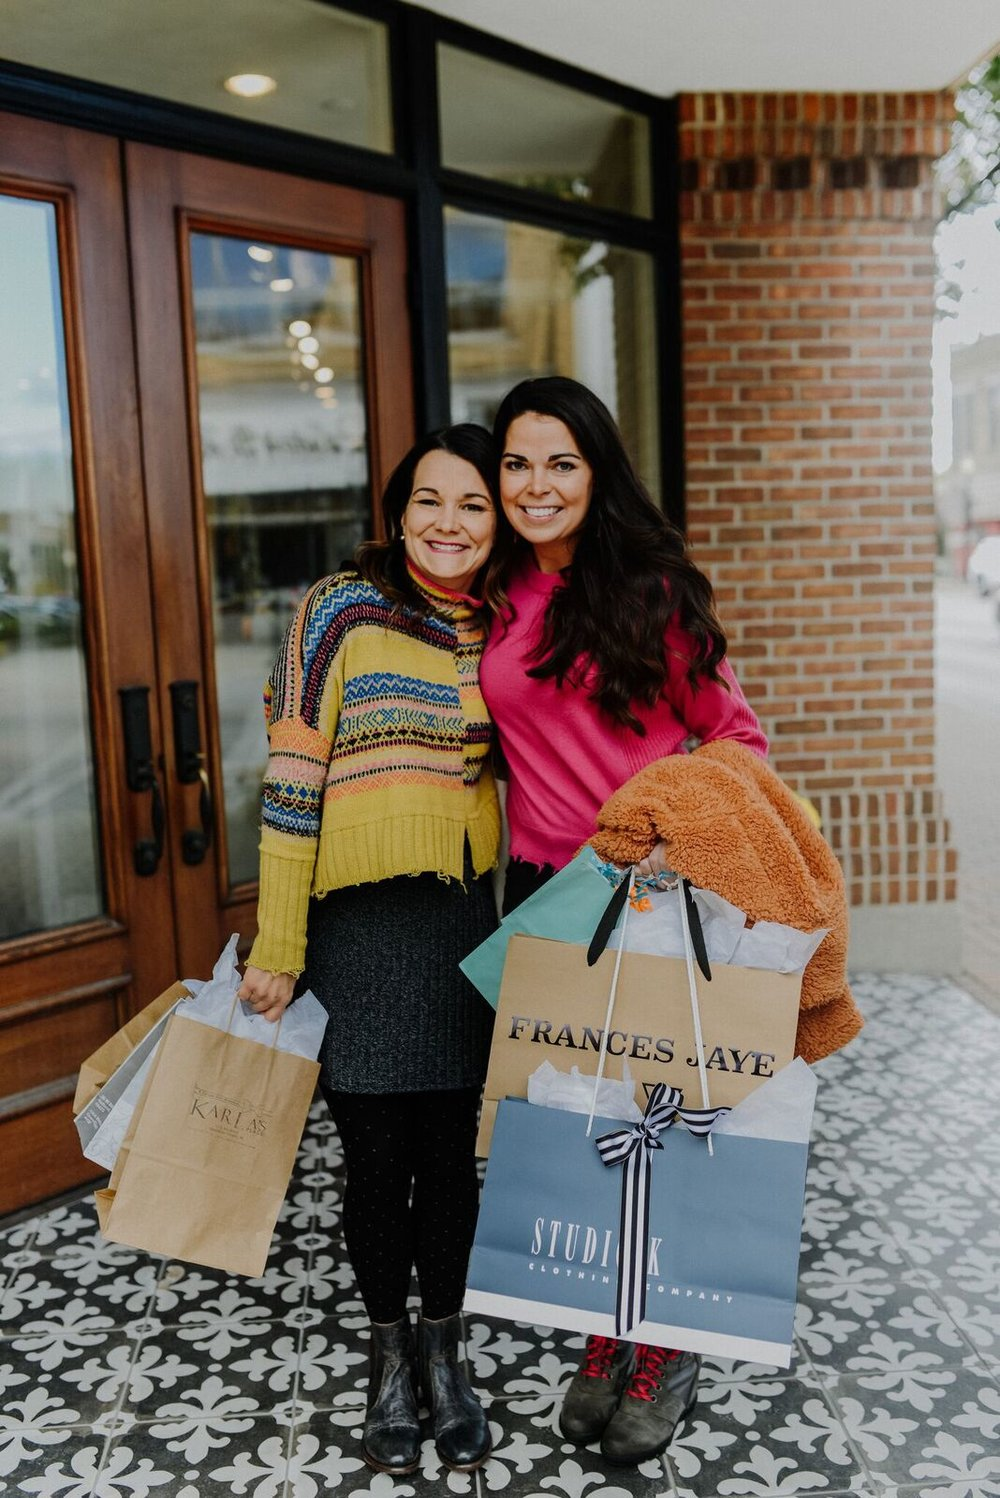 I LOVE working with Lexi to help you know more about our little town! Come on over here and shop local for all your holiday gifts this year!